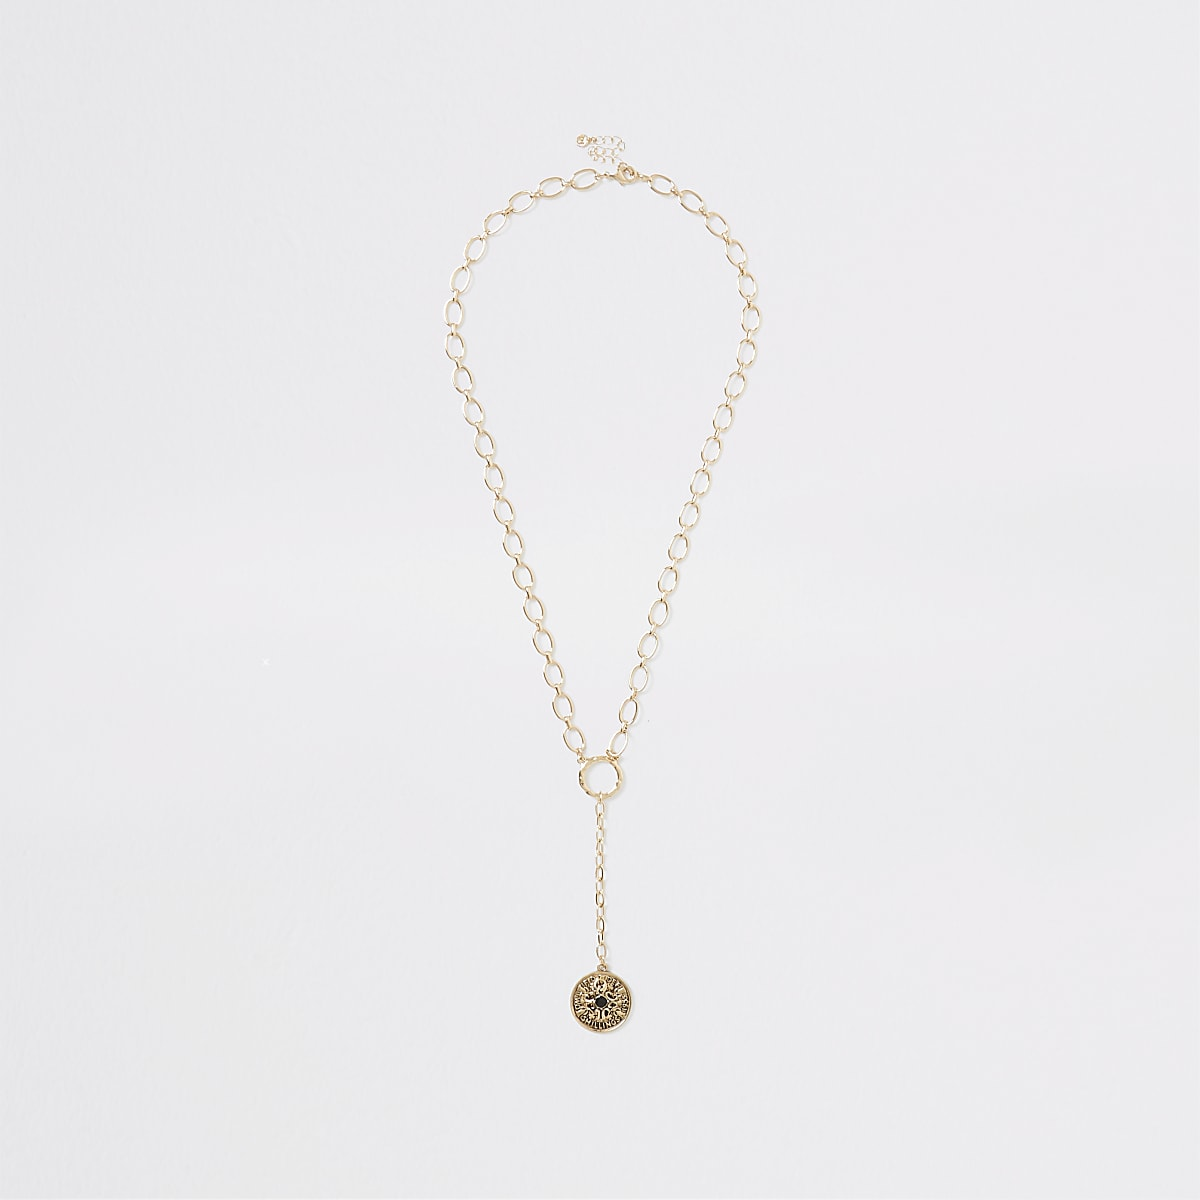 Gold colour chain coin pendant drop necklace